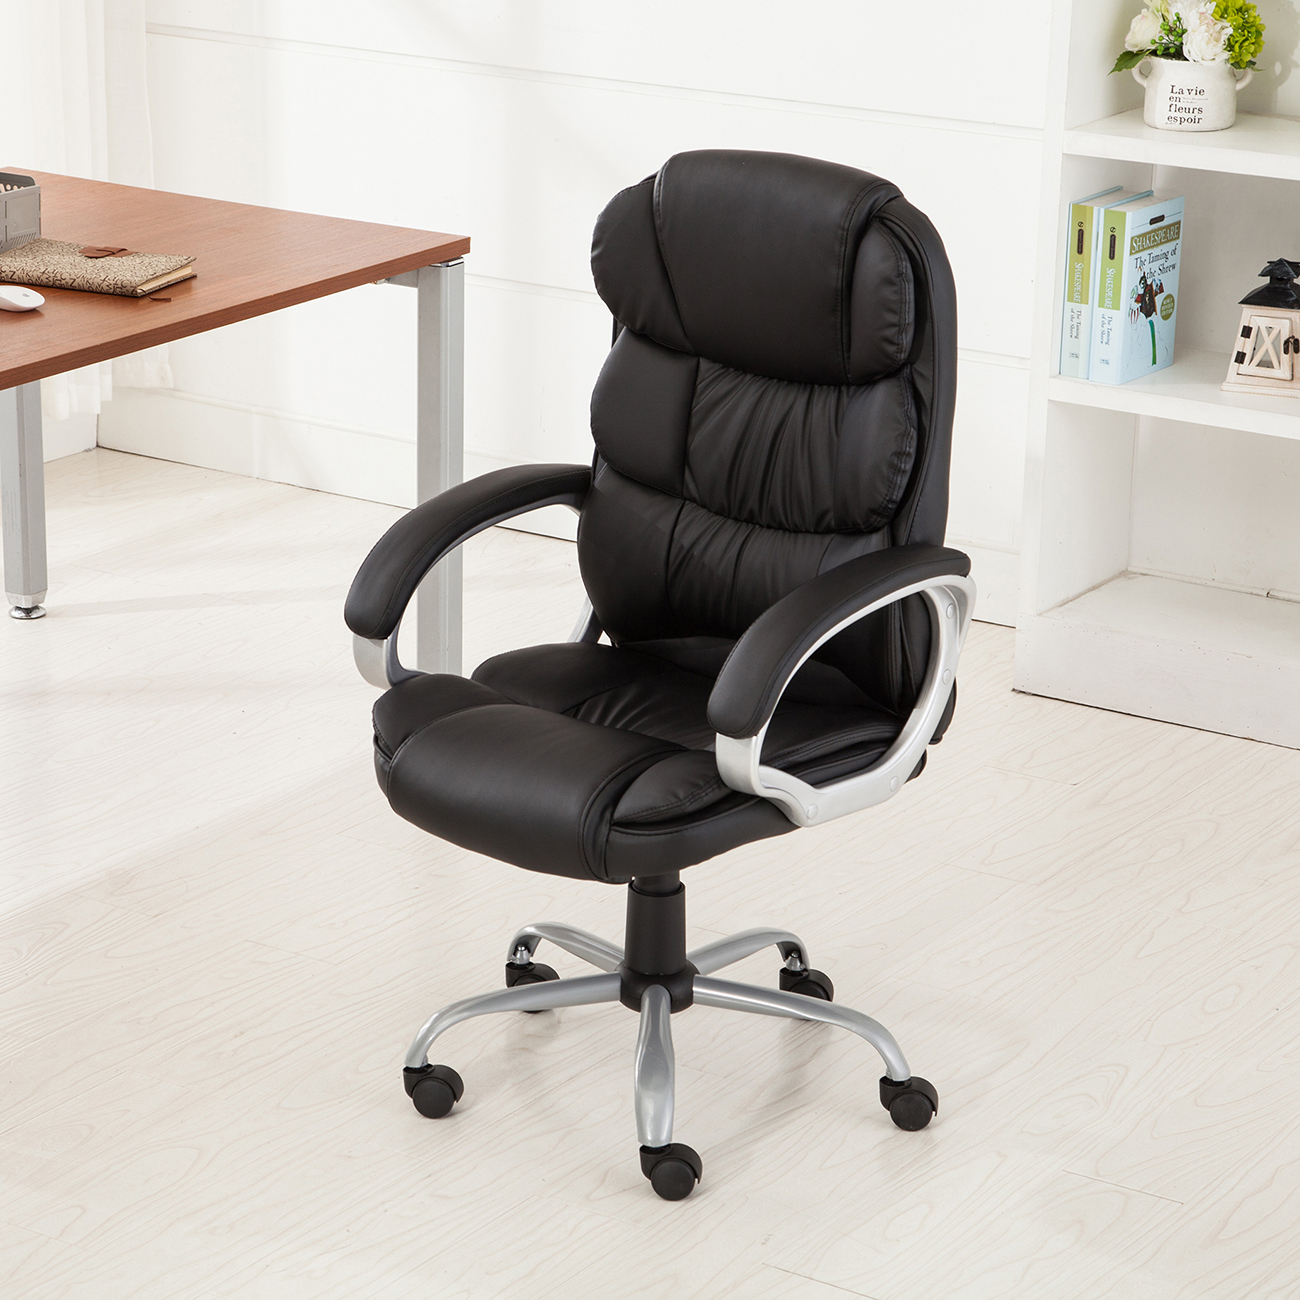 PU Leather Ergonomic High Back Executive Best Desk Task